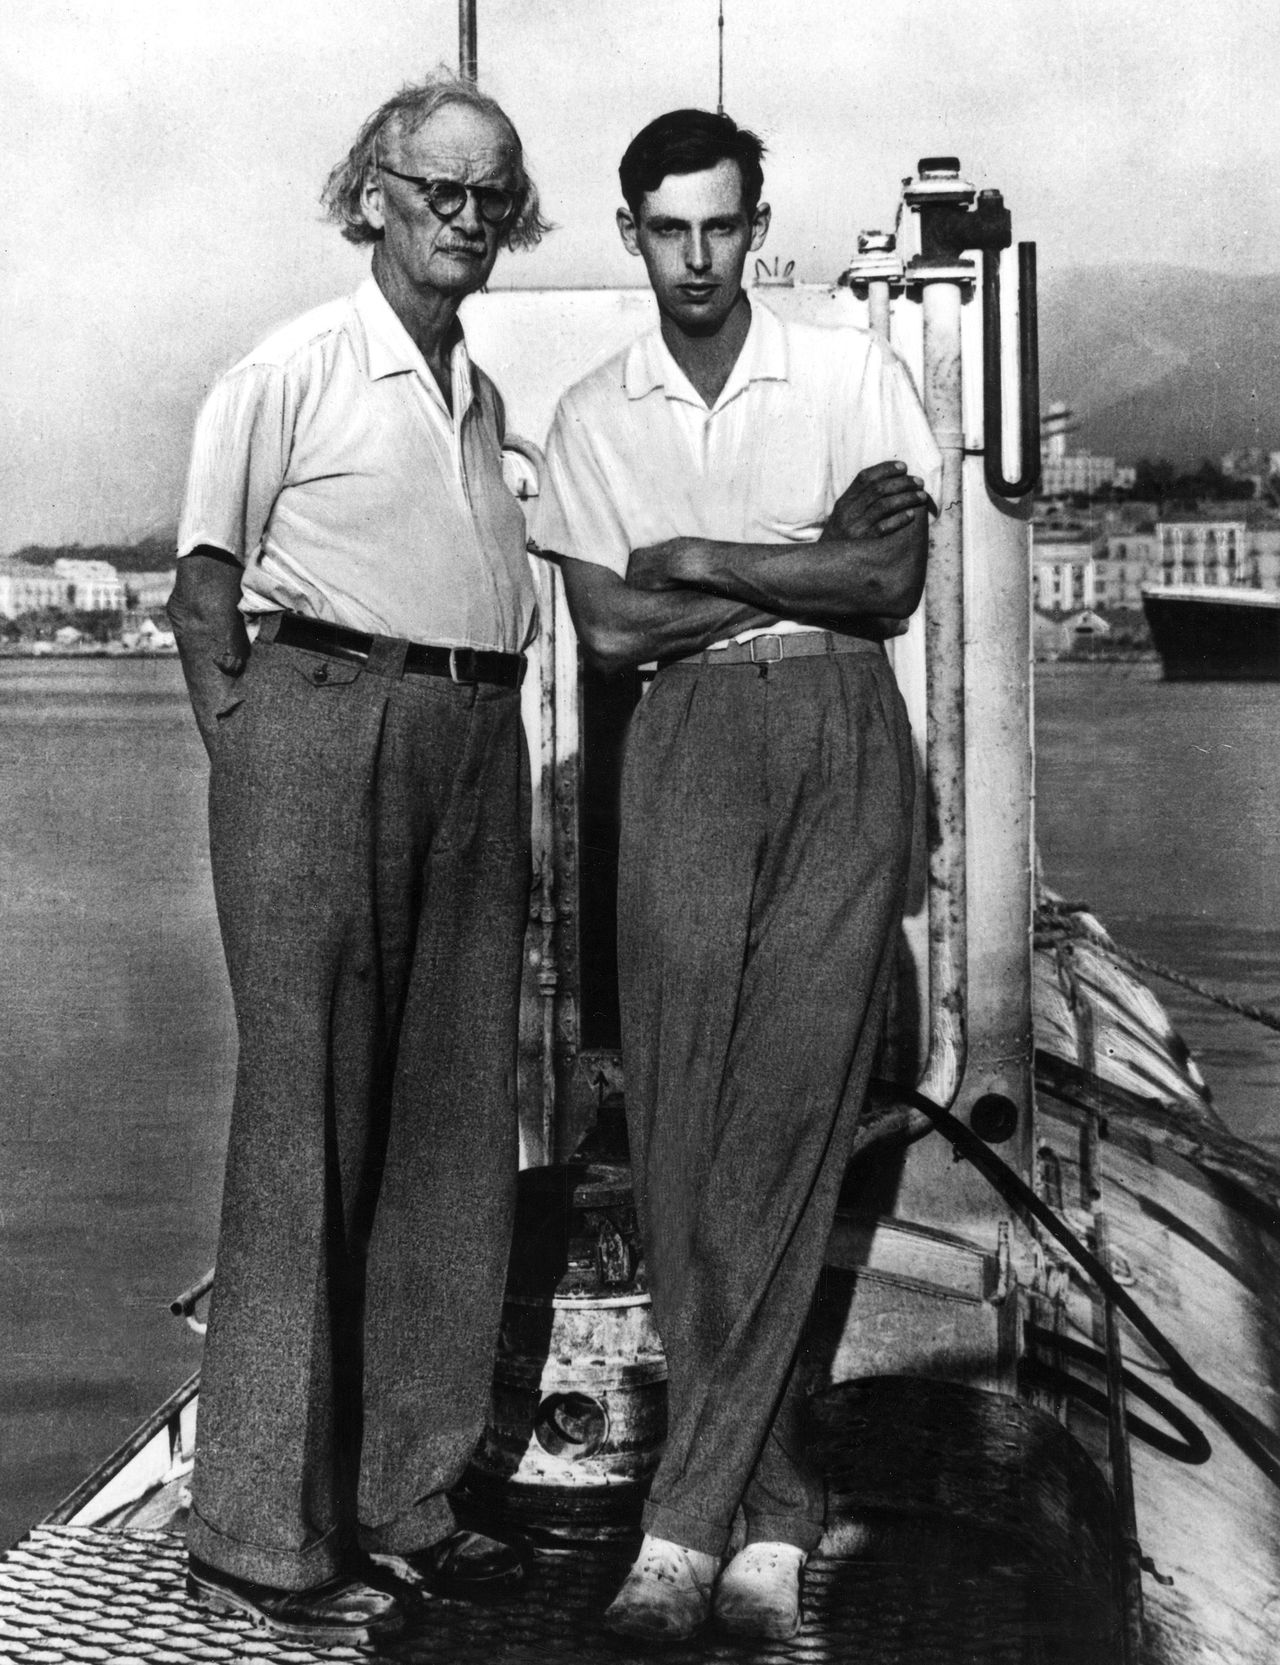 Jacques Piccard (rechts) aan dek van de Trieste, naast zijn vader Auguste. (Foto AFP) (FILES) File picture of Swiss born physicist, Auguste Piccard (L), posing with his son late deep sea explorer Jacques Piccard (R) on the deck of the Trieste bathyscaphe in the sixties. Jacques Piccard, who holds the record for travelling to the deepest point underwater, died on November 01, 2008 at the age of 86. He was born in Brussels, together with Don Walsh reached the bottom of the Mariana Trench, 10,916 metres (35,813 feet) below sea level on January 23, 1960 -- the farthest point underwater. AFP PHOTO FILES/STF (B/W ONLY)